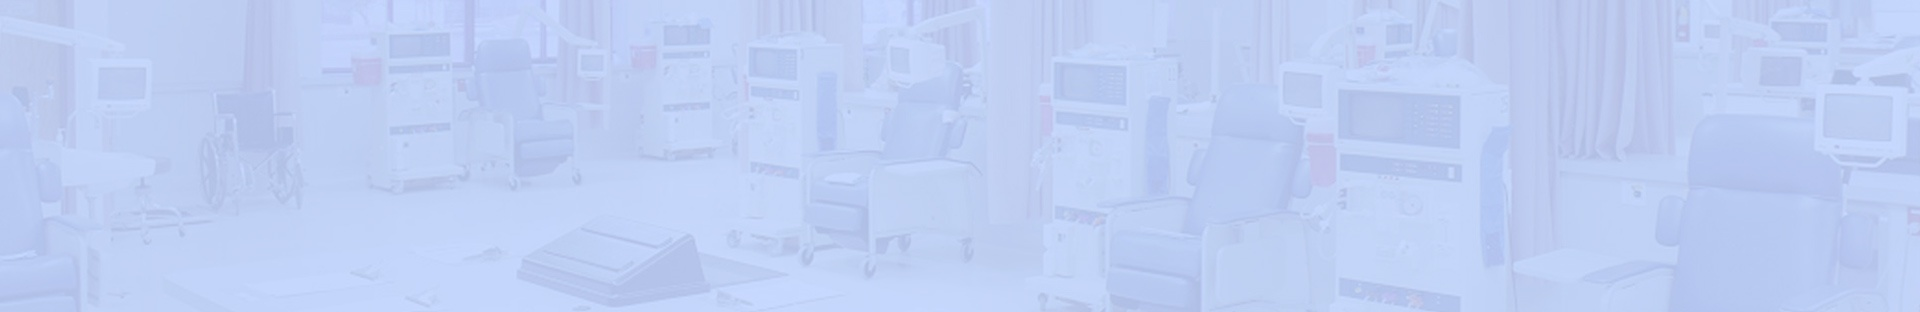 PROJECT-CATEGORY-BANNER-HEALTHCARE-1.jpg